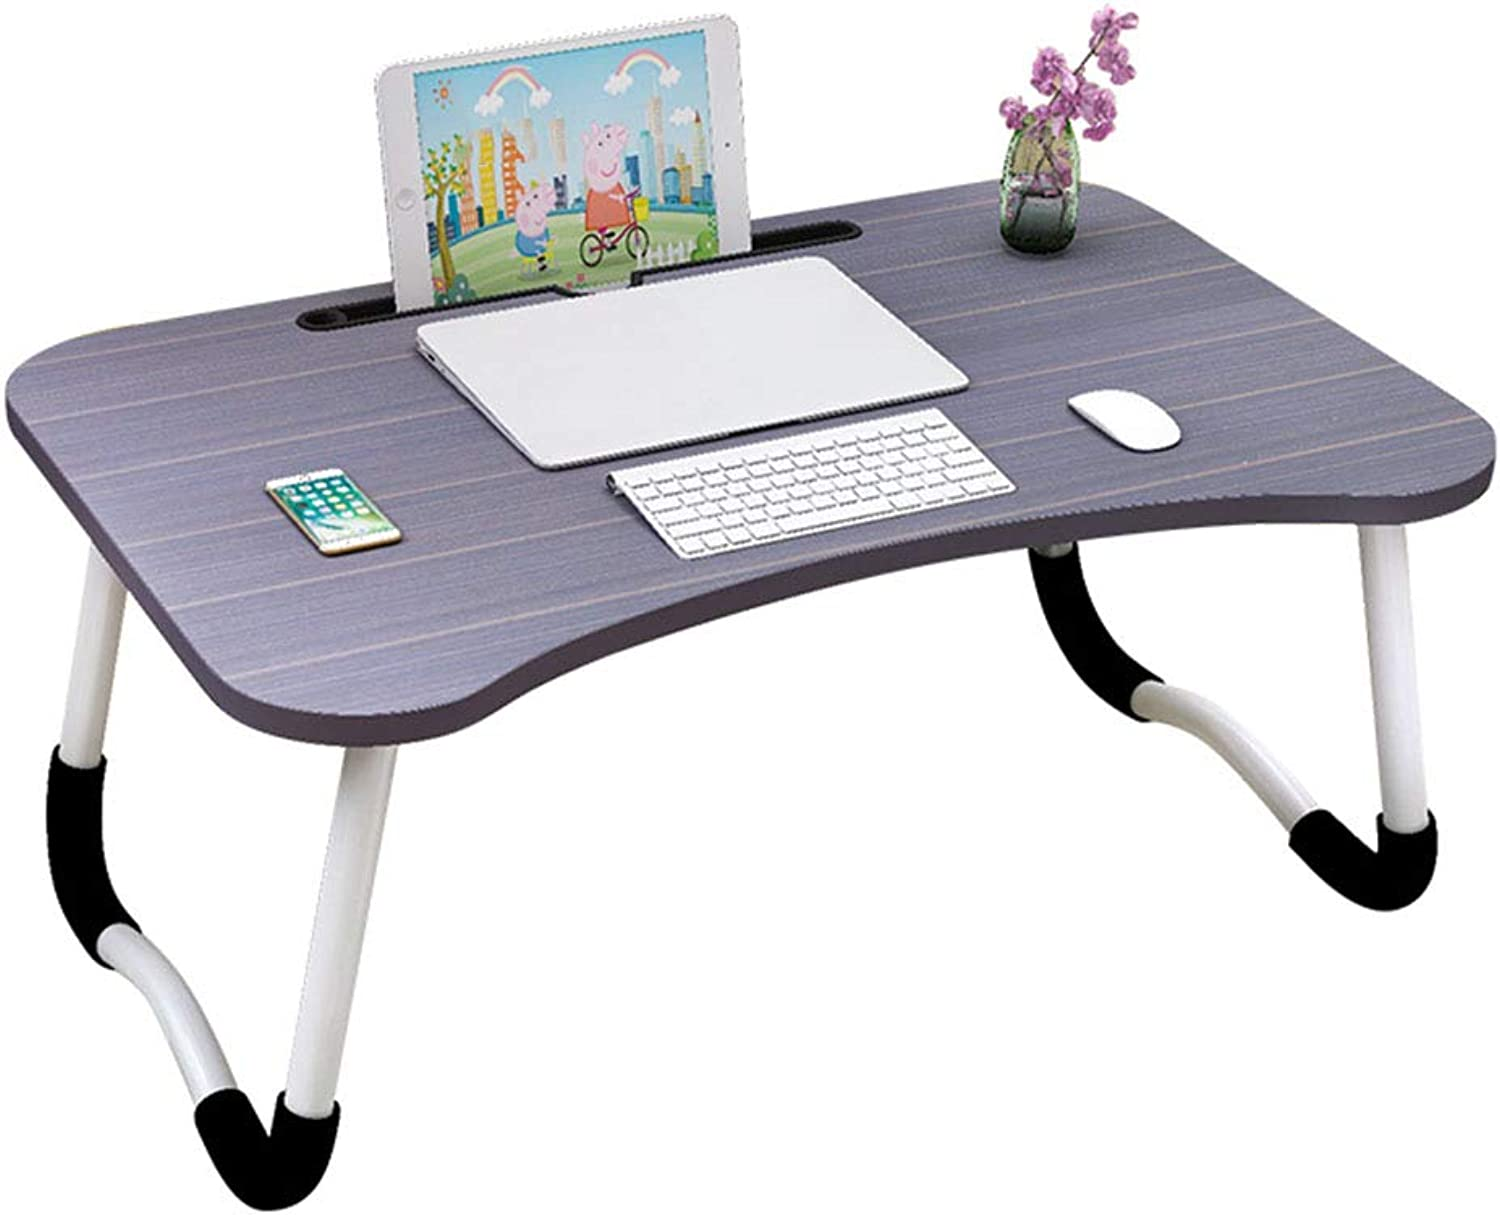 NJLC Folding Table, Simple Folding Desk Computer Desk Bed with Multi-Function Folding Table,B